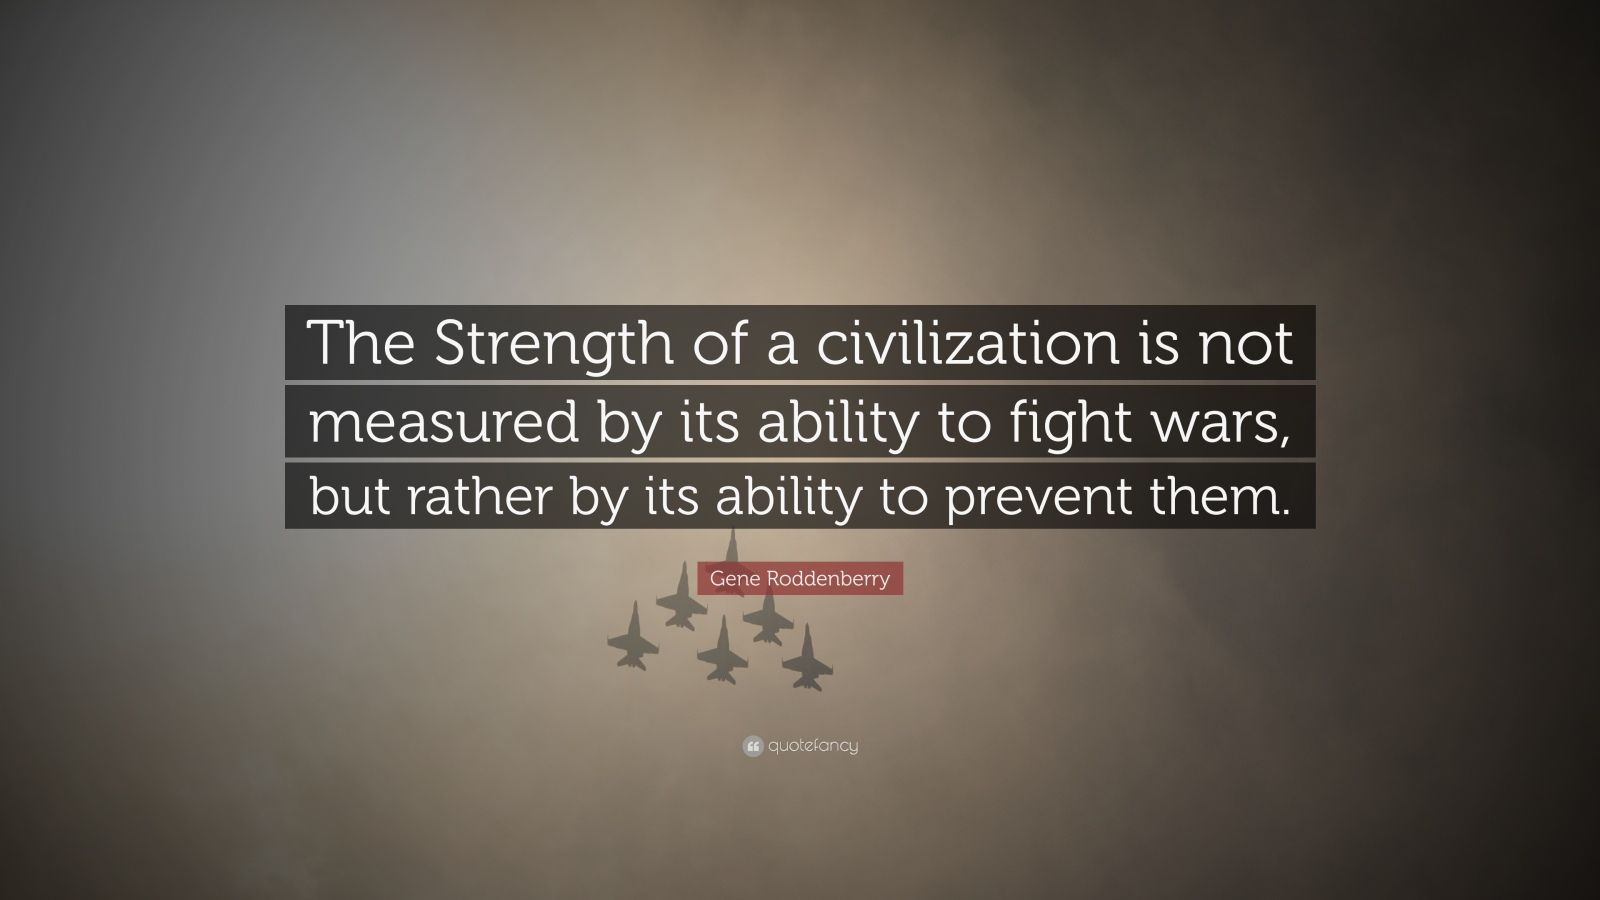 """Gene Roddenberry Quote: """"The Strength of a civilization is not measured by its ability to fight wars, but rather by its ability to prevent them."""""""